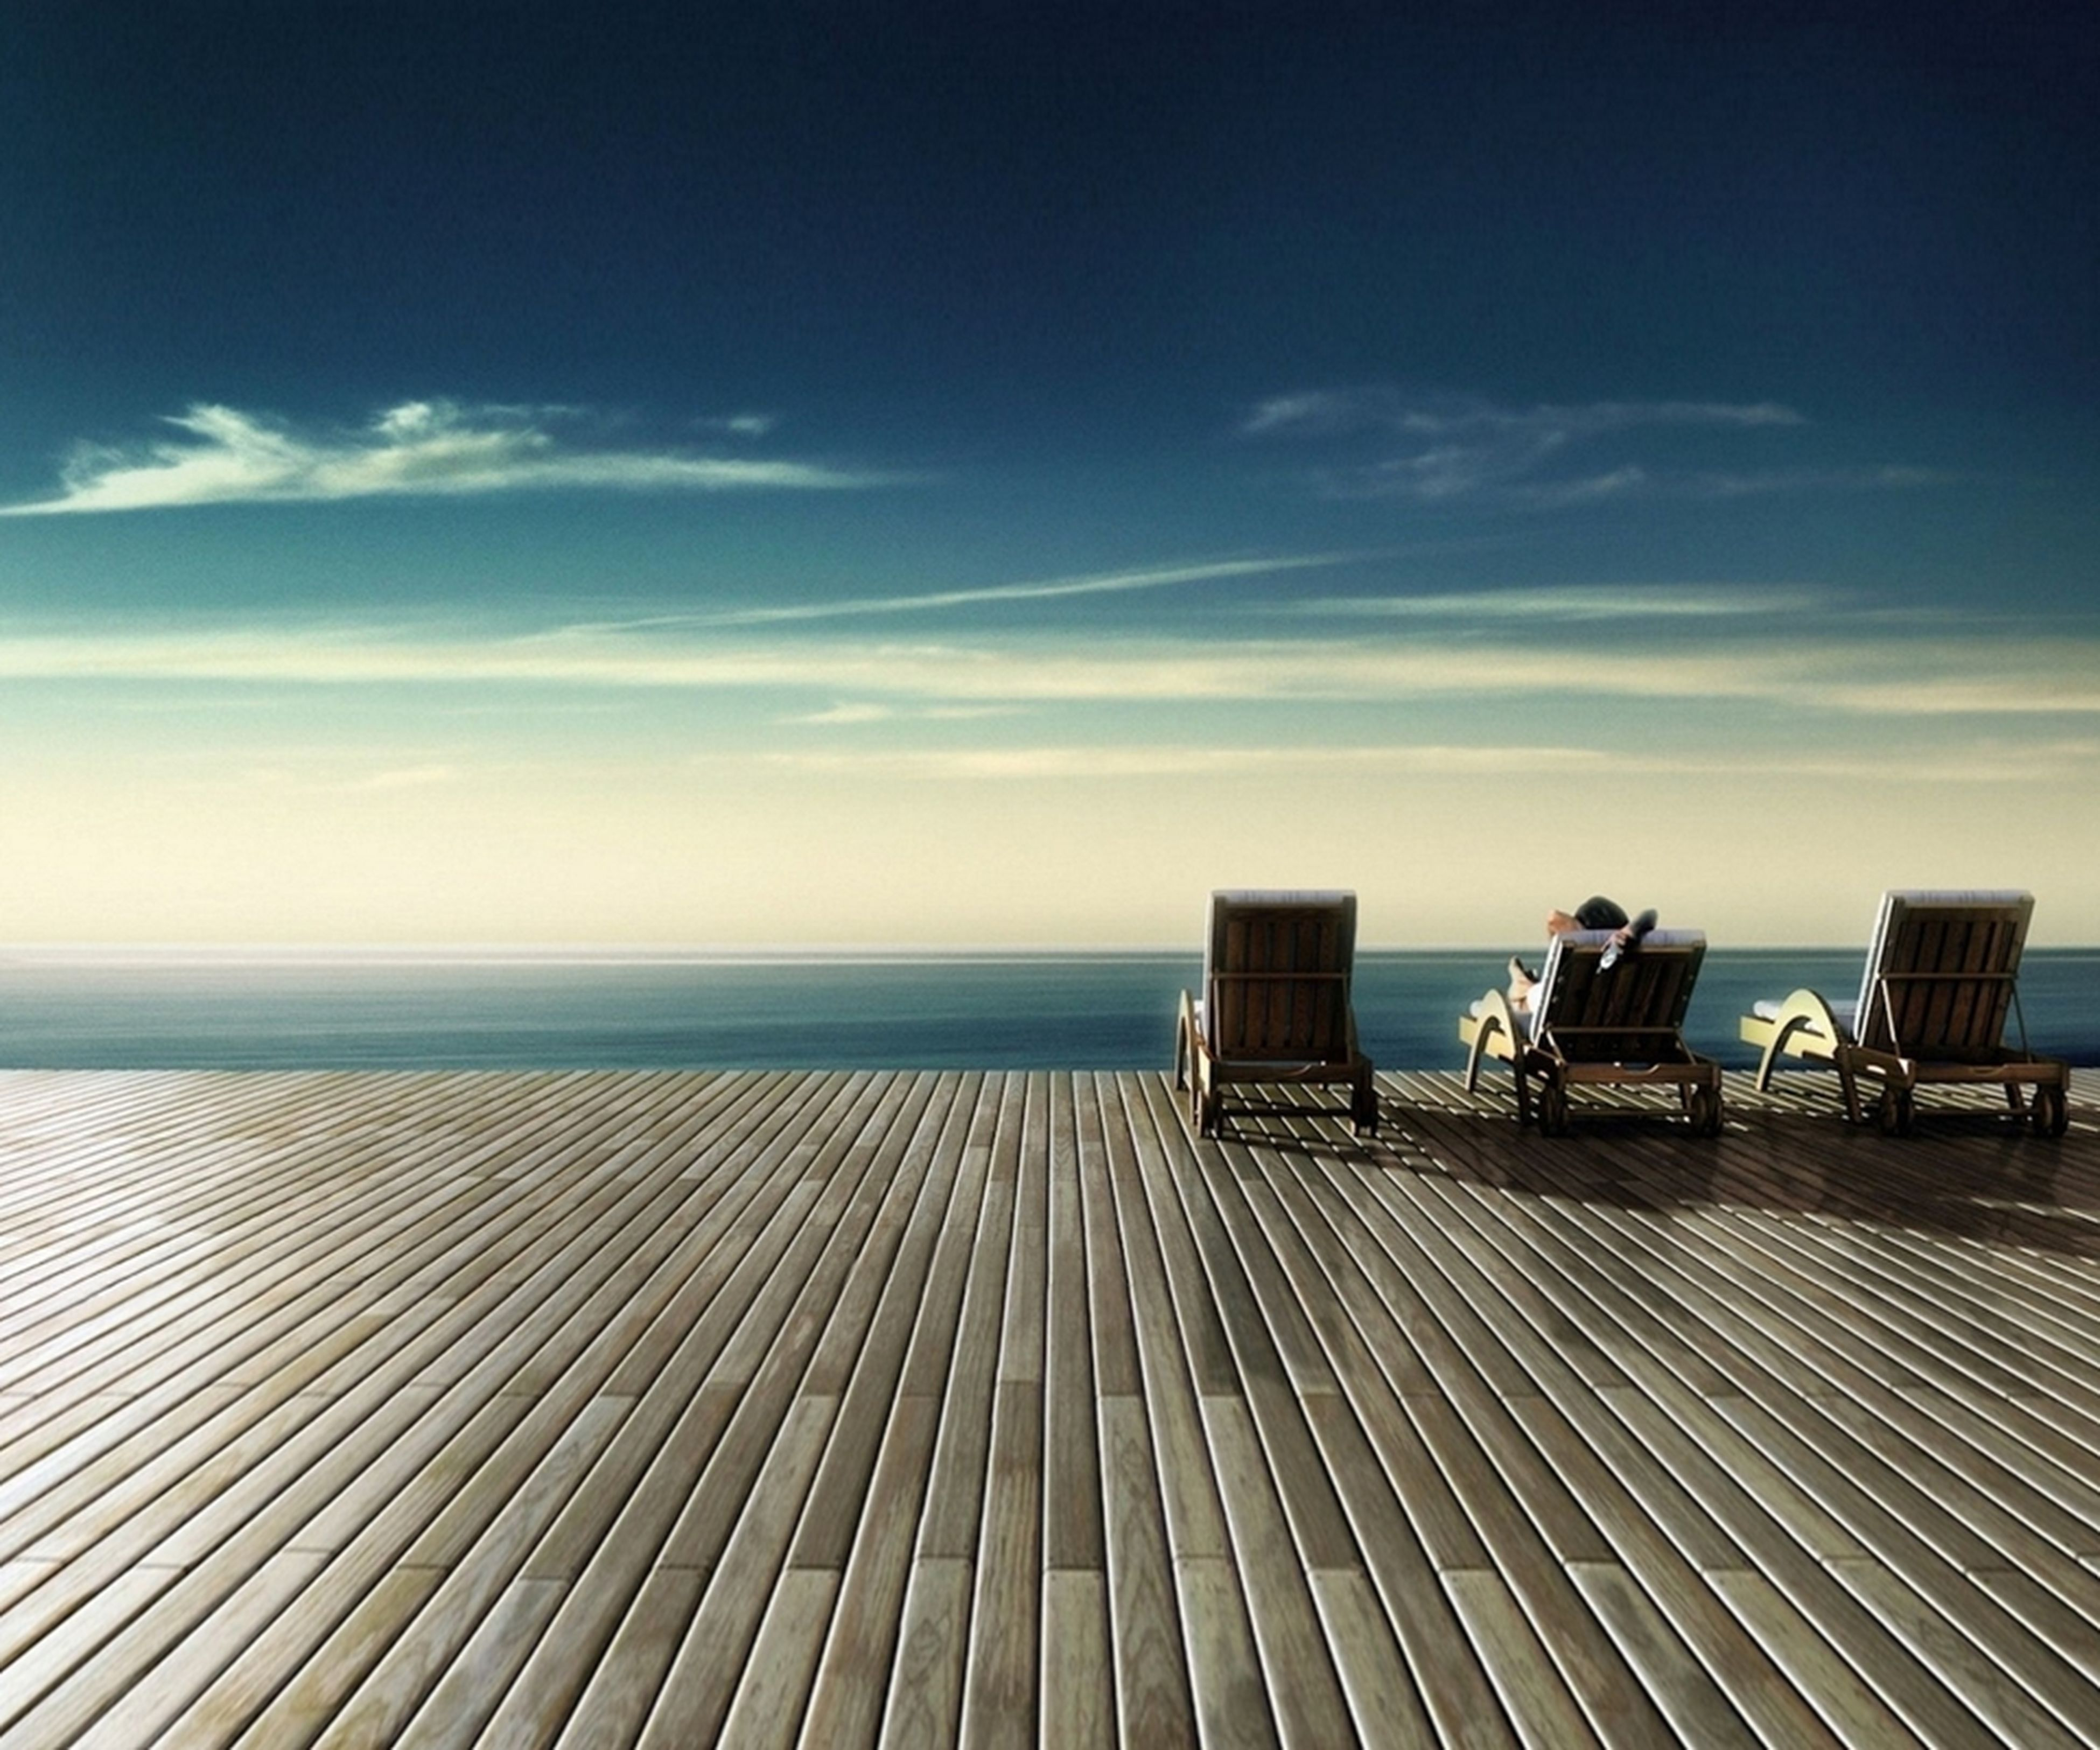 sea, horizon over water, beach, sky, tranquil scene, tranquility, water, sand, scenics, shore, nature, beauty in nature, pier, the way forward, cloud - sky, wood - material, boardwalk, blue, cloud, idyllic